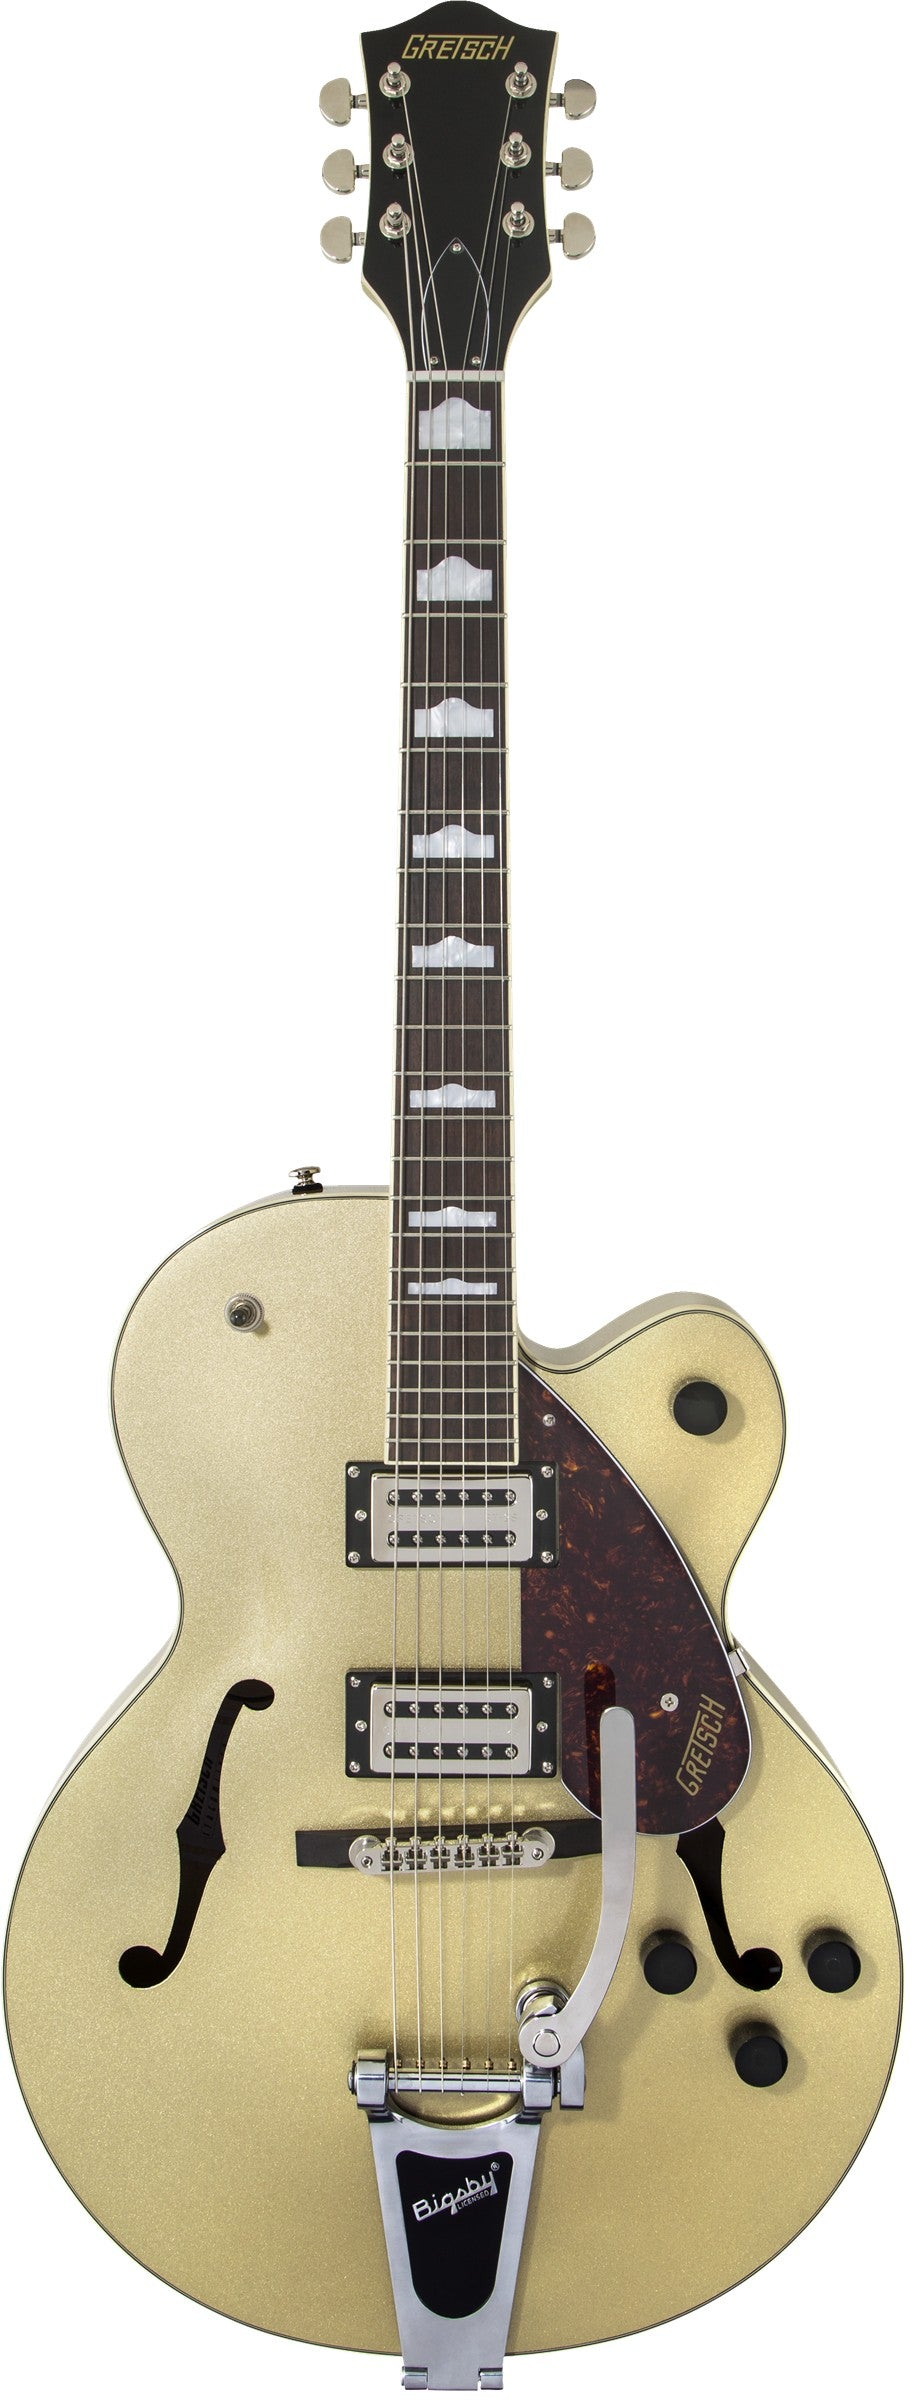 gretsch g2420t streamline hollow body electric guitar chuck levin 39 s. Black Bedroom Furniture Sets. Home Design Ideas